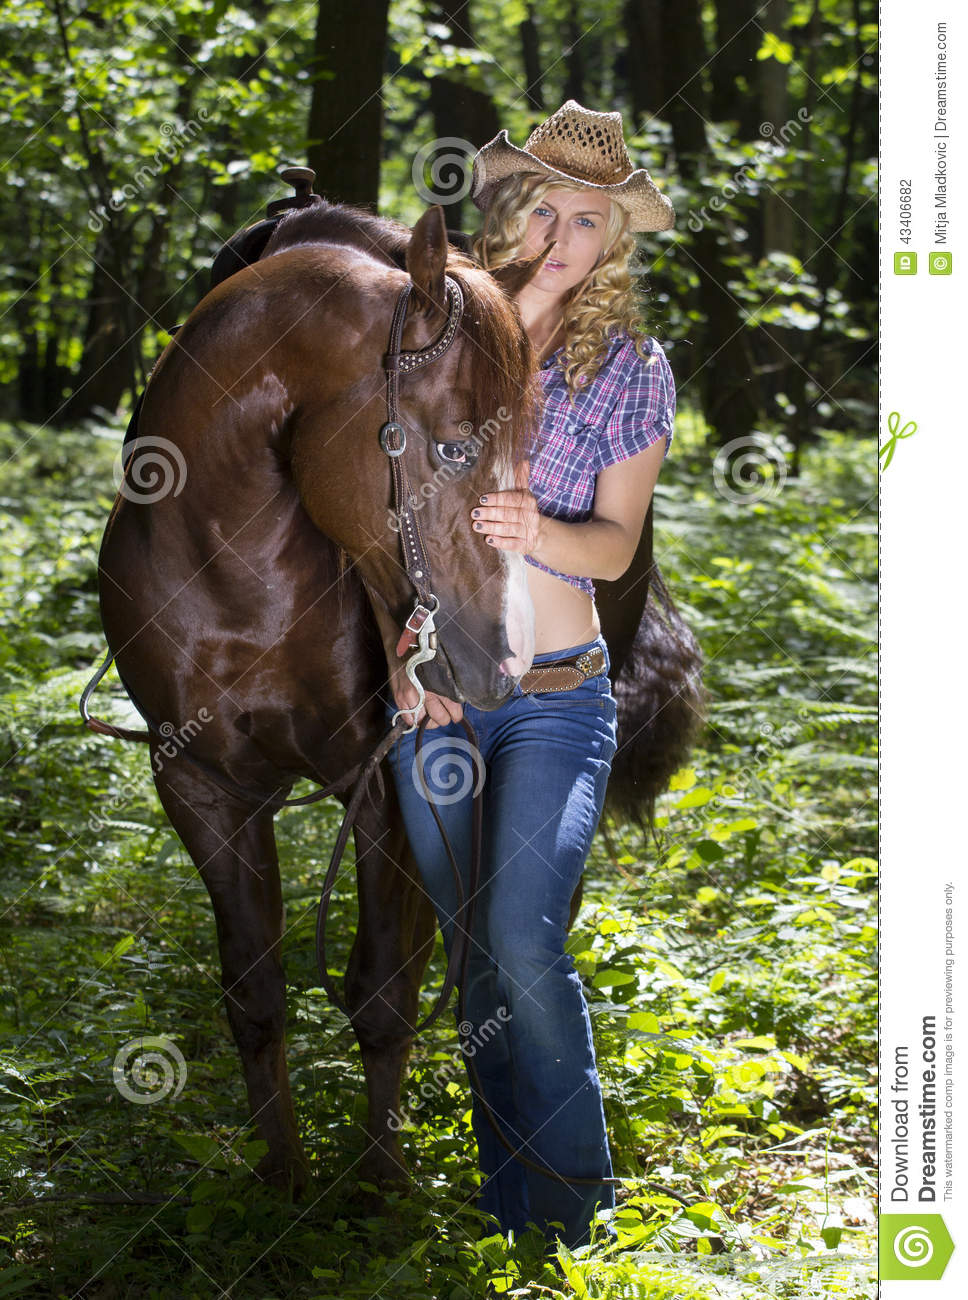 Cow Wallpaper Cute Cowgirl With Horse In Forest Stock Photo Image 43406682